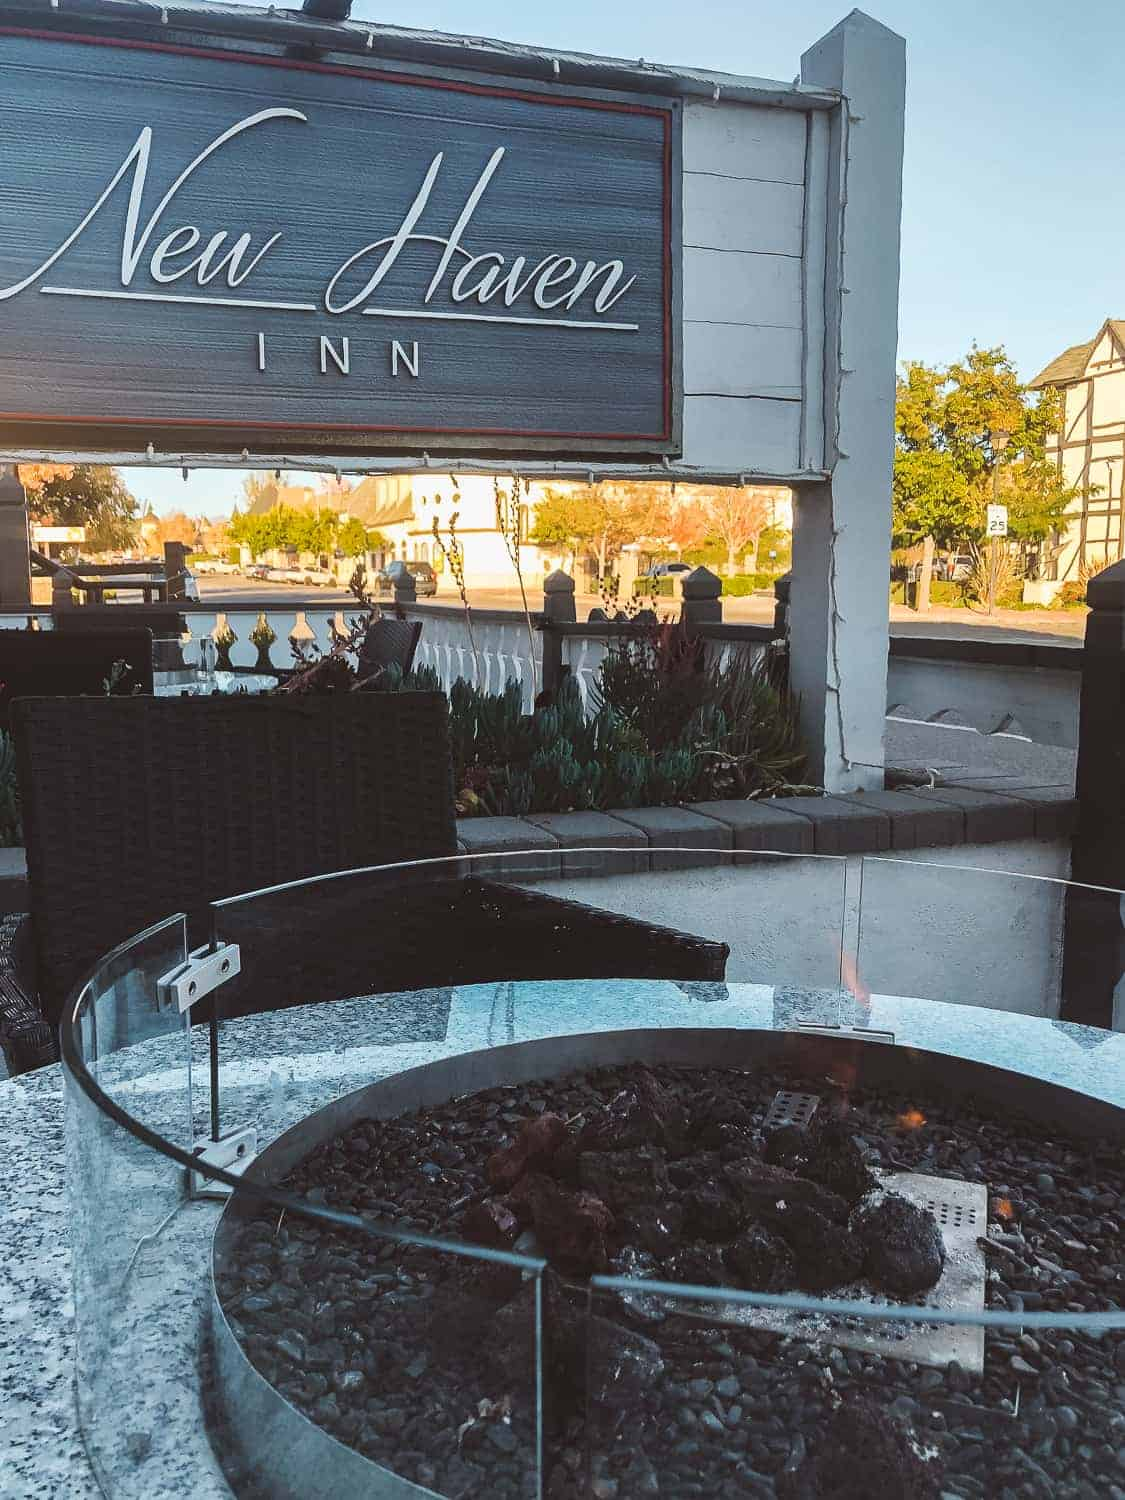 New Haven Inn hotel with fire pit